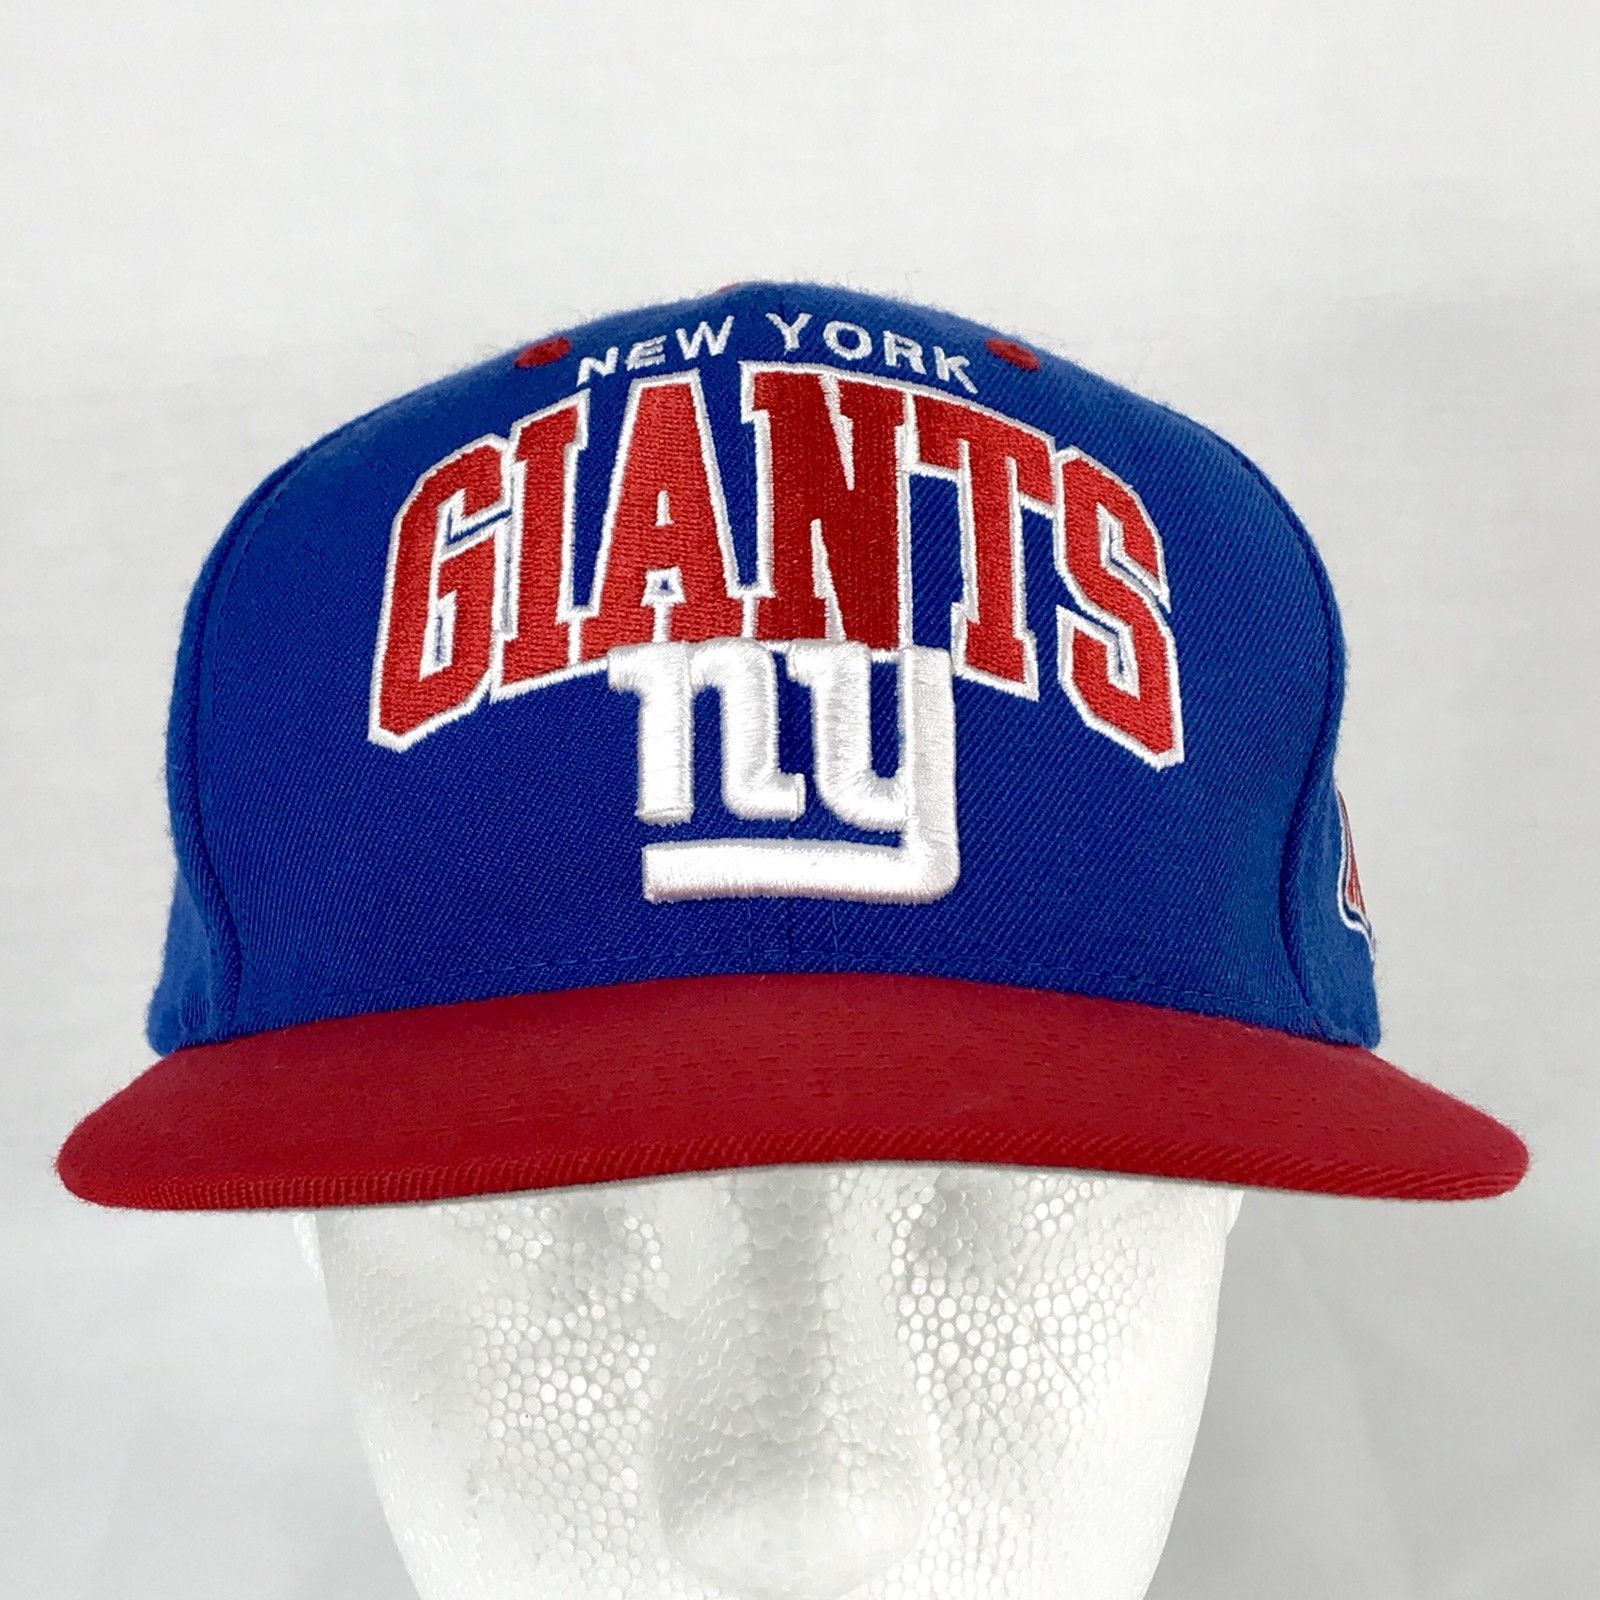 3ef8c3f21fa S l1600. S l1600. Previous. New York Giants Mitchell   Ness Vintage  Collection NFL Football SnapBack ...